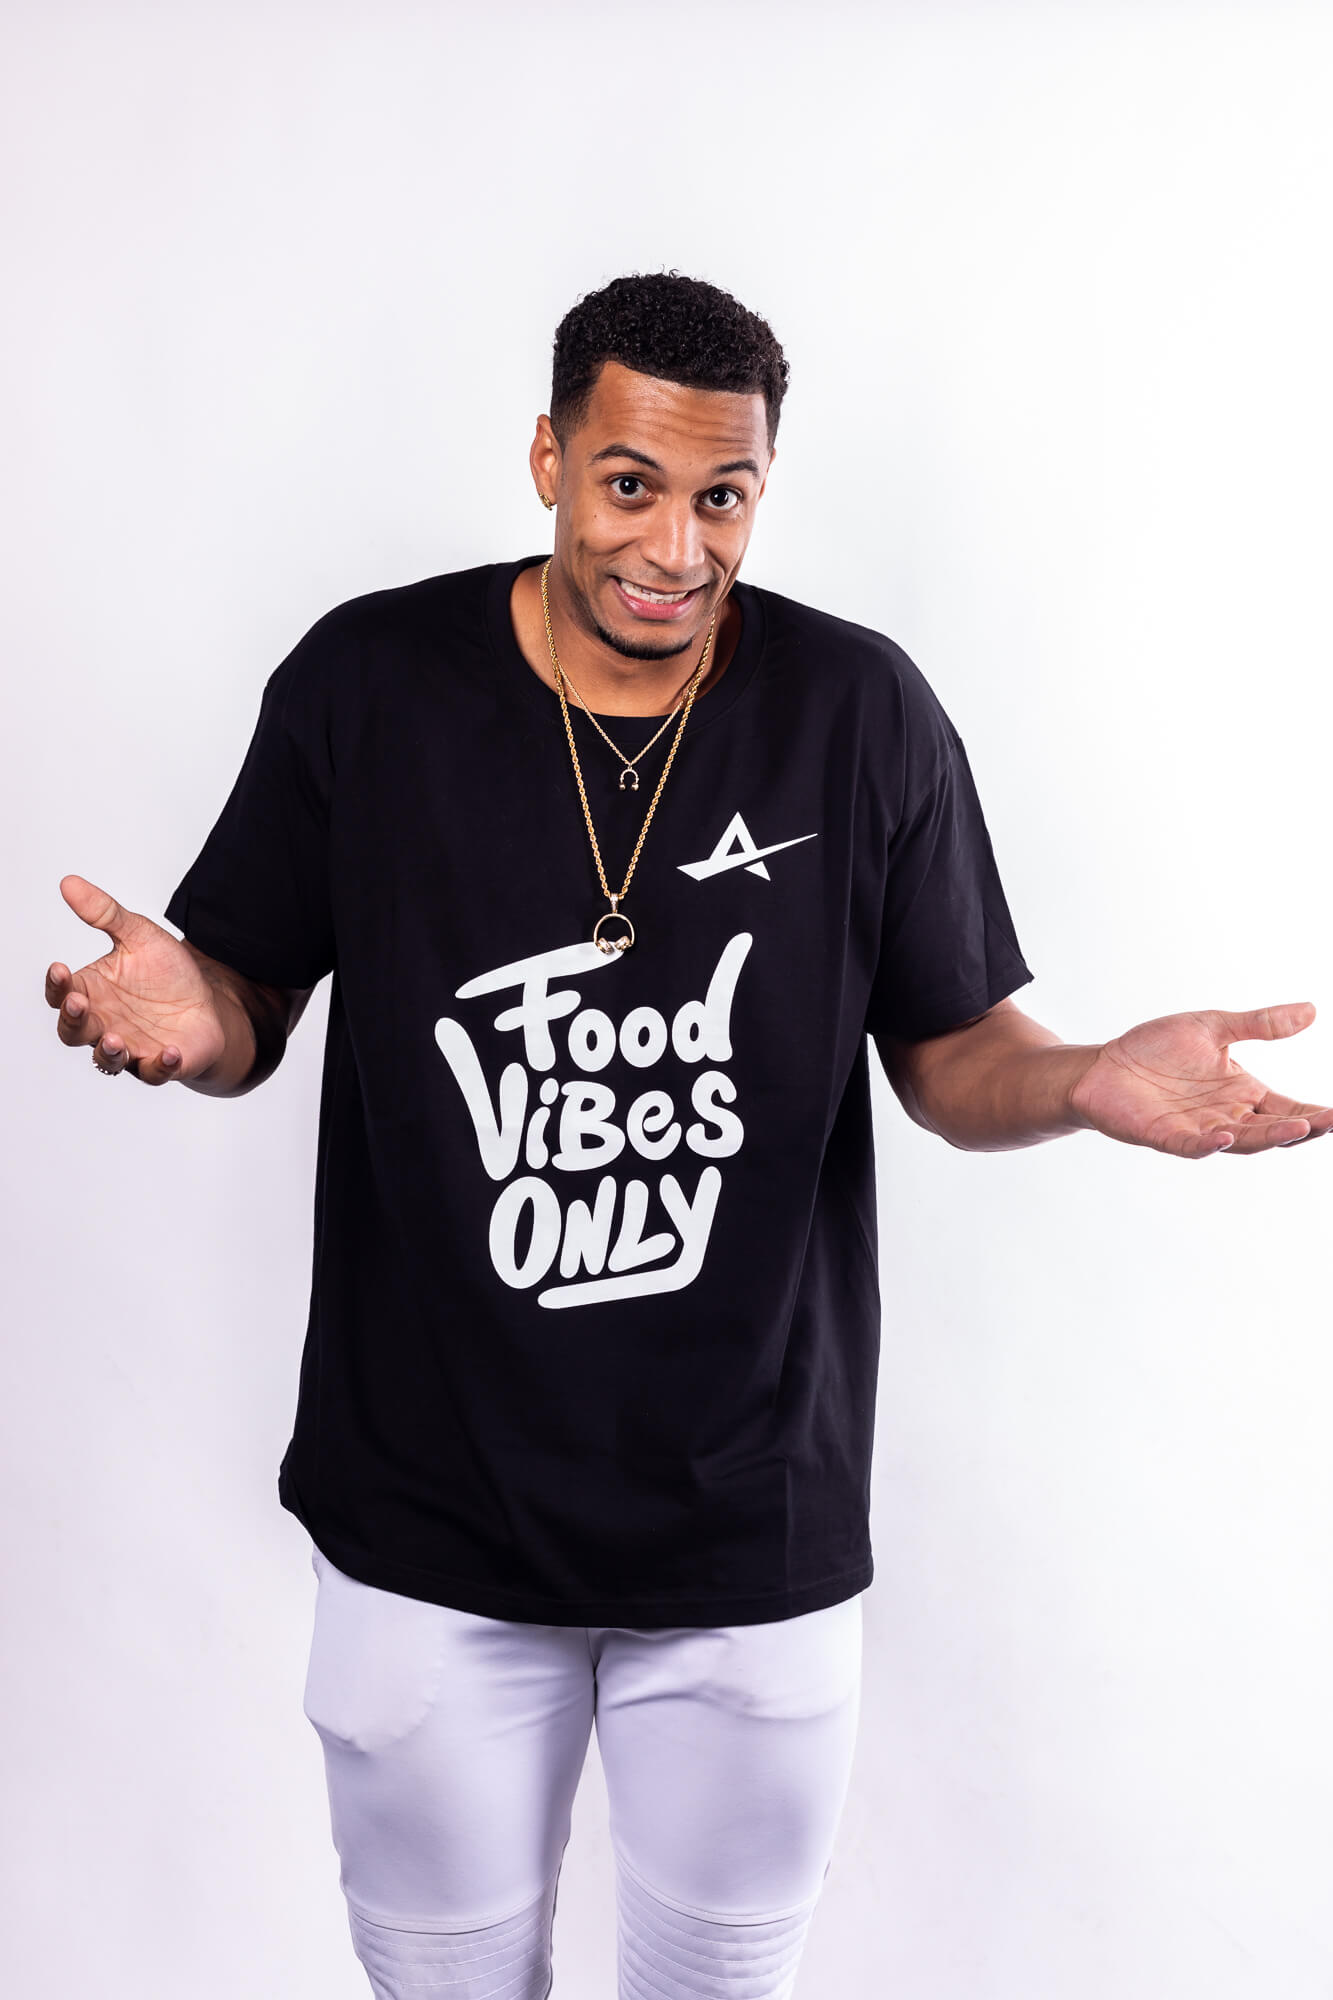 TJB - Food Vibes Only T-Shirt Zware Botten Unisex